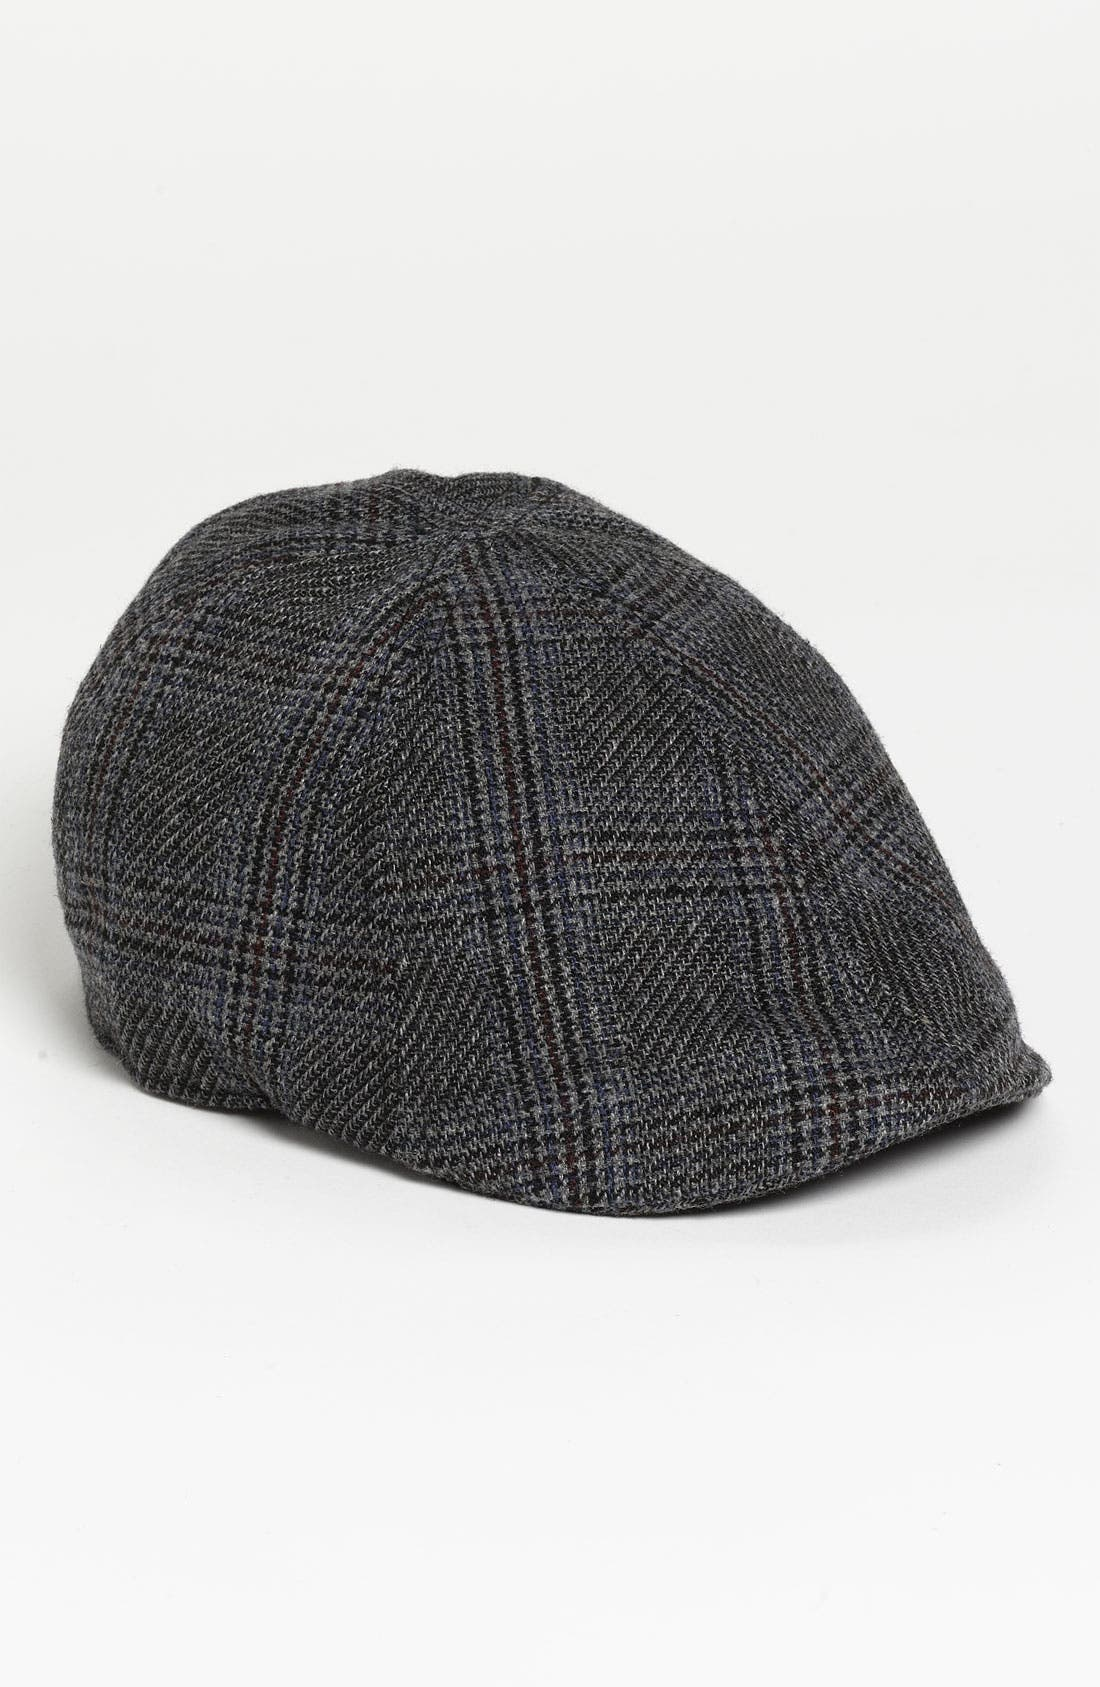 Alternate Image 1 Selected - Free Authority Houndstooth Plaid Duckbill Ivy Cap